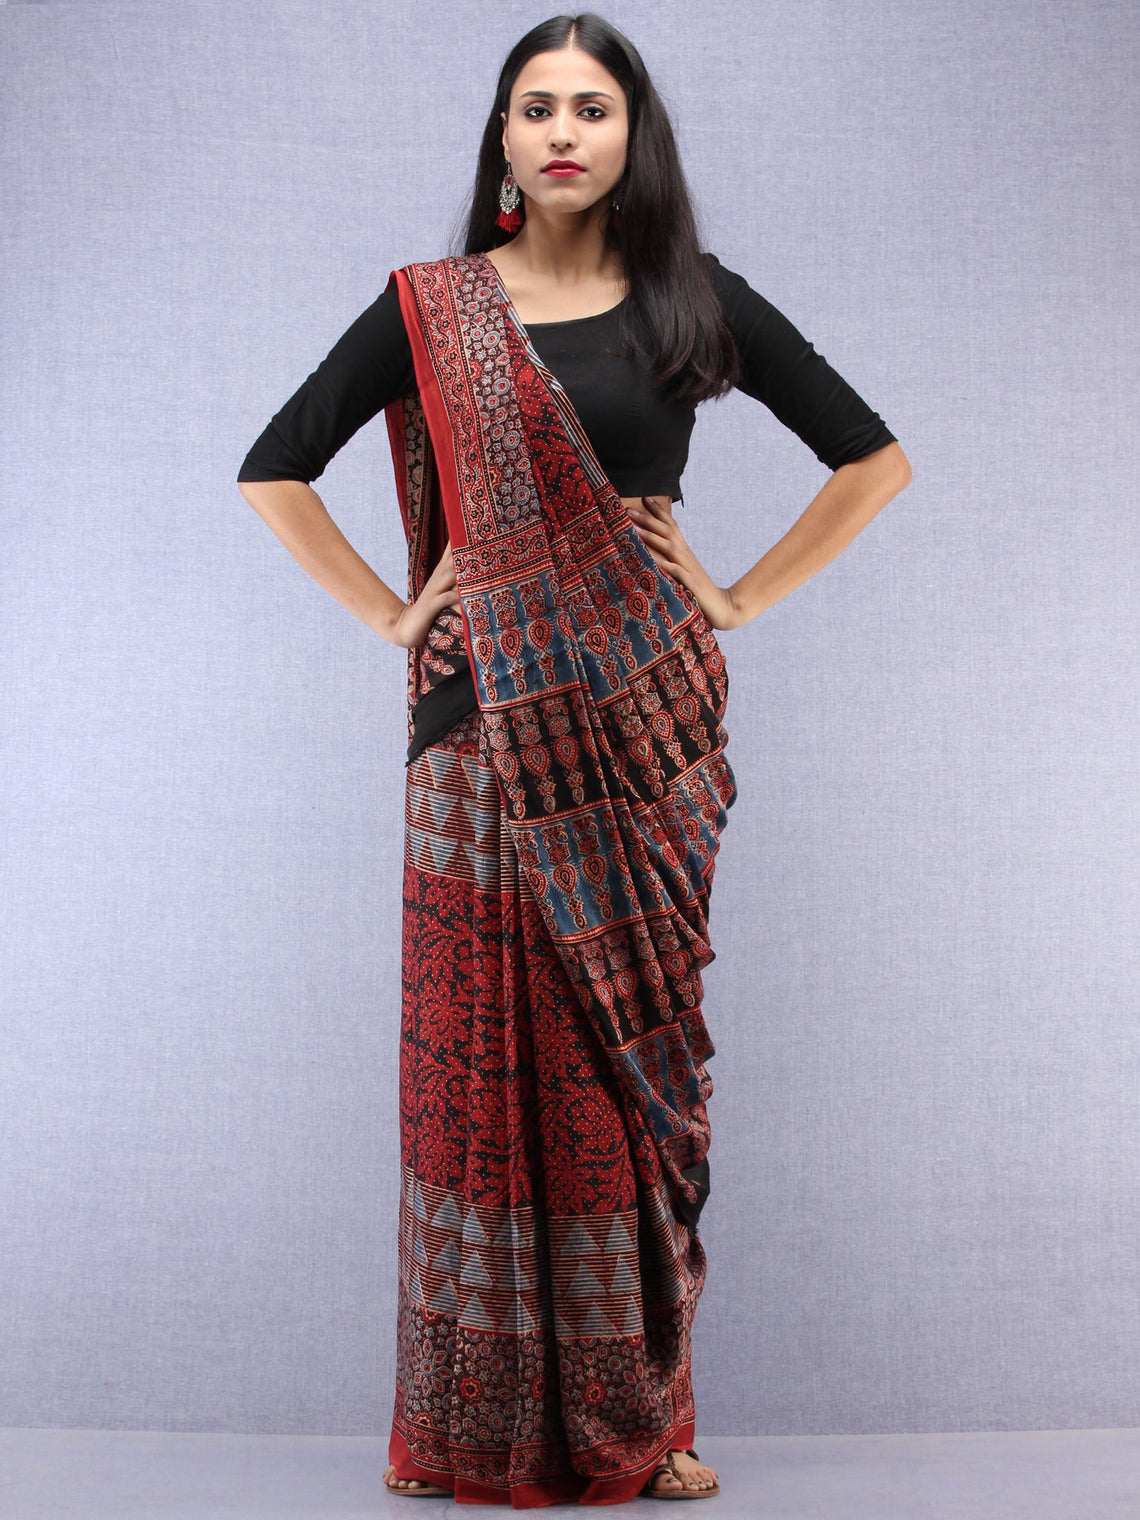 Red Beige Black Indigo Ajrakh Hand Block Printed Modal Silk Saree - S031704443